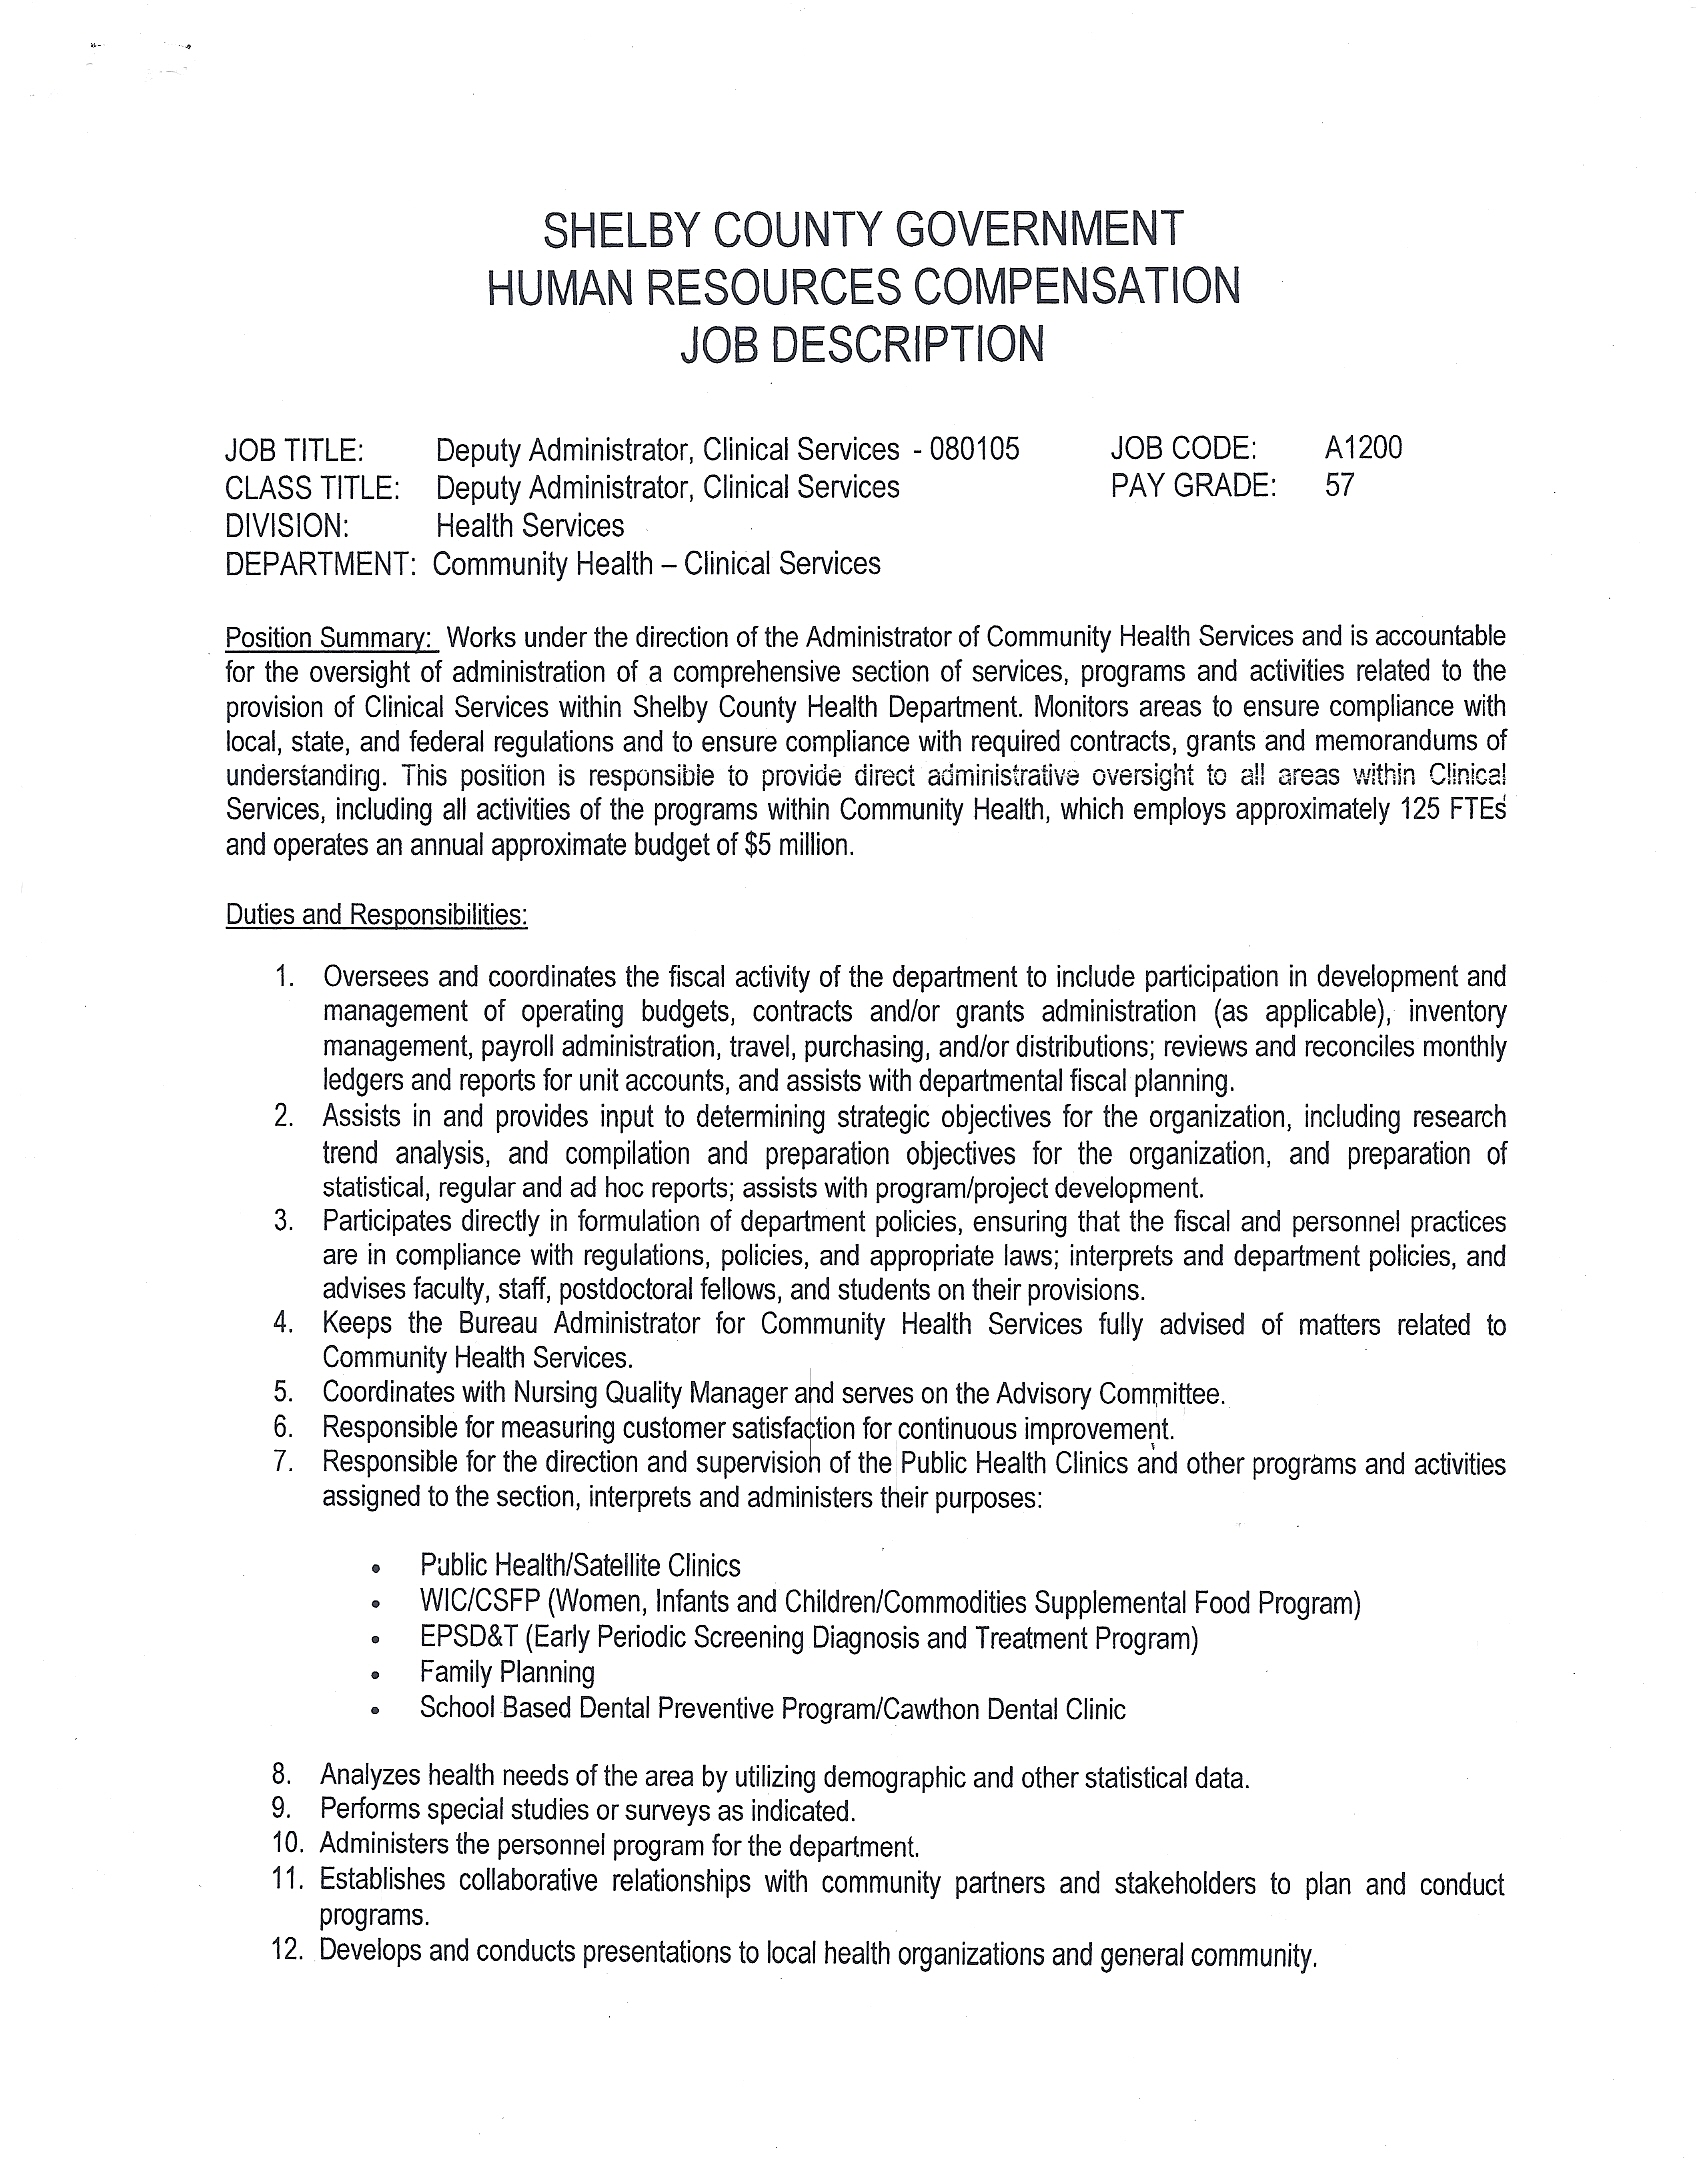 Email Resume And Cover Letter To Gregorythel